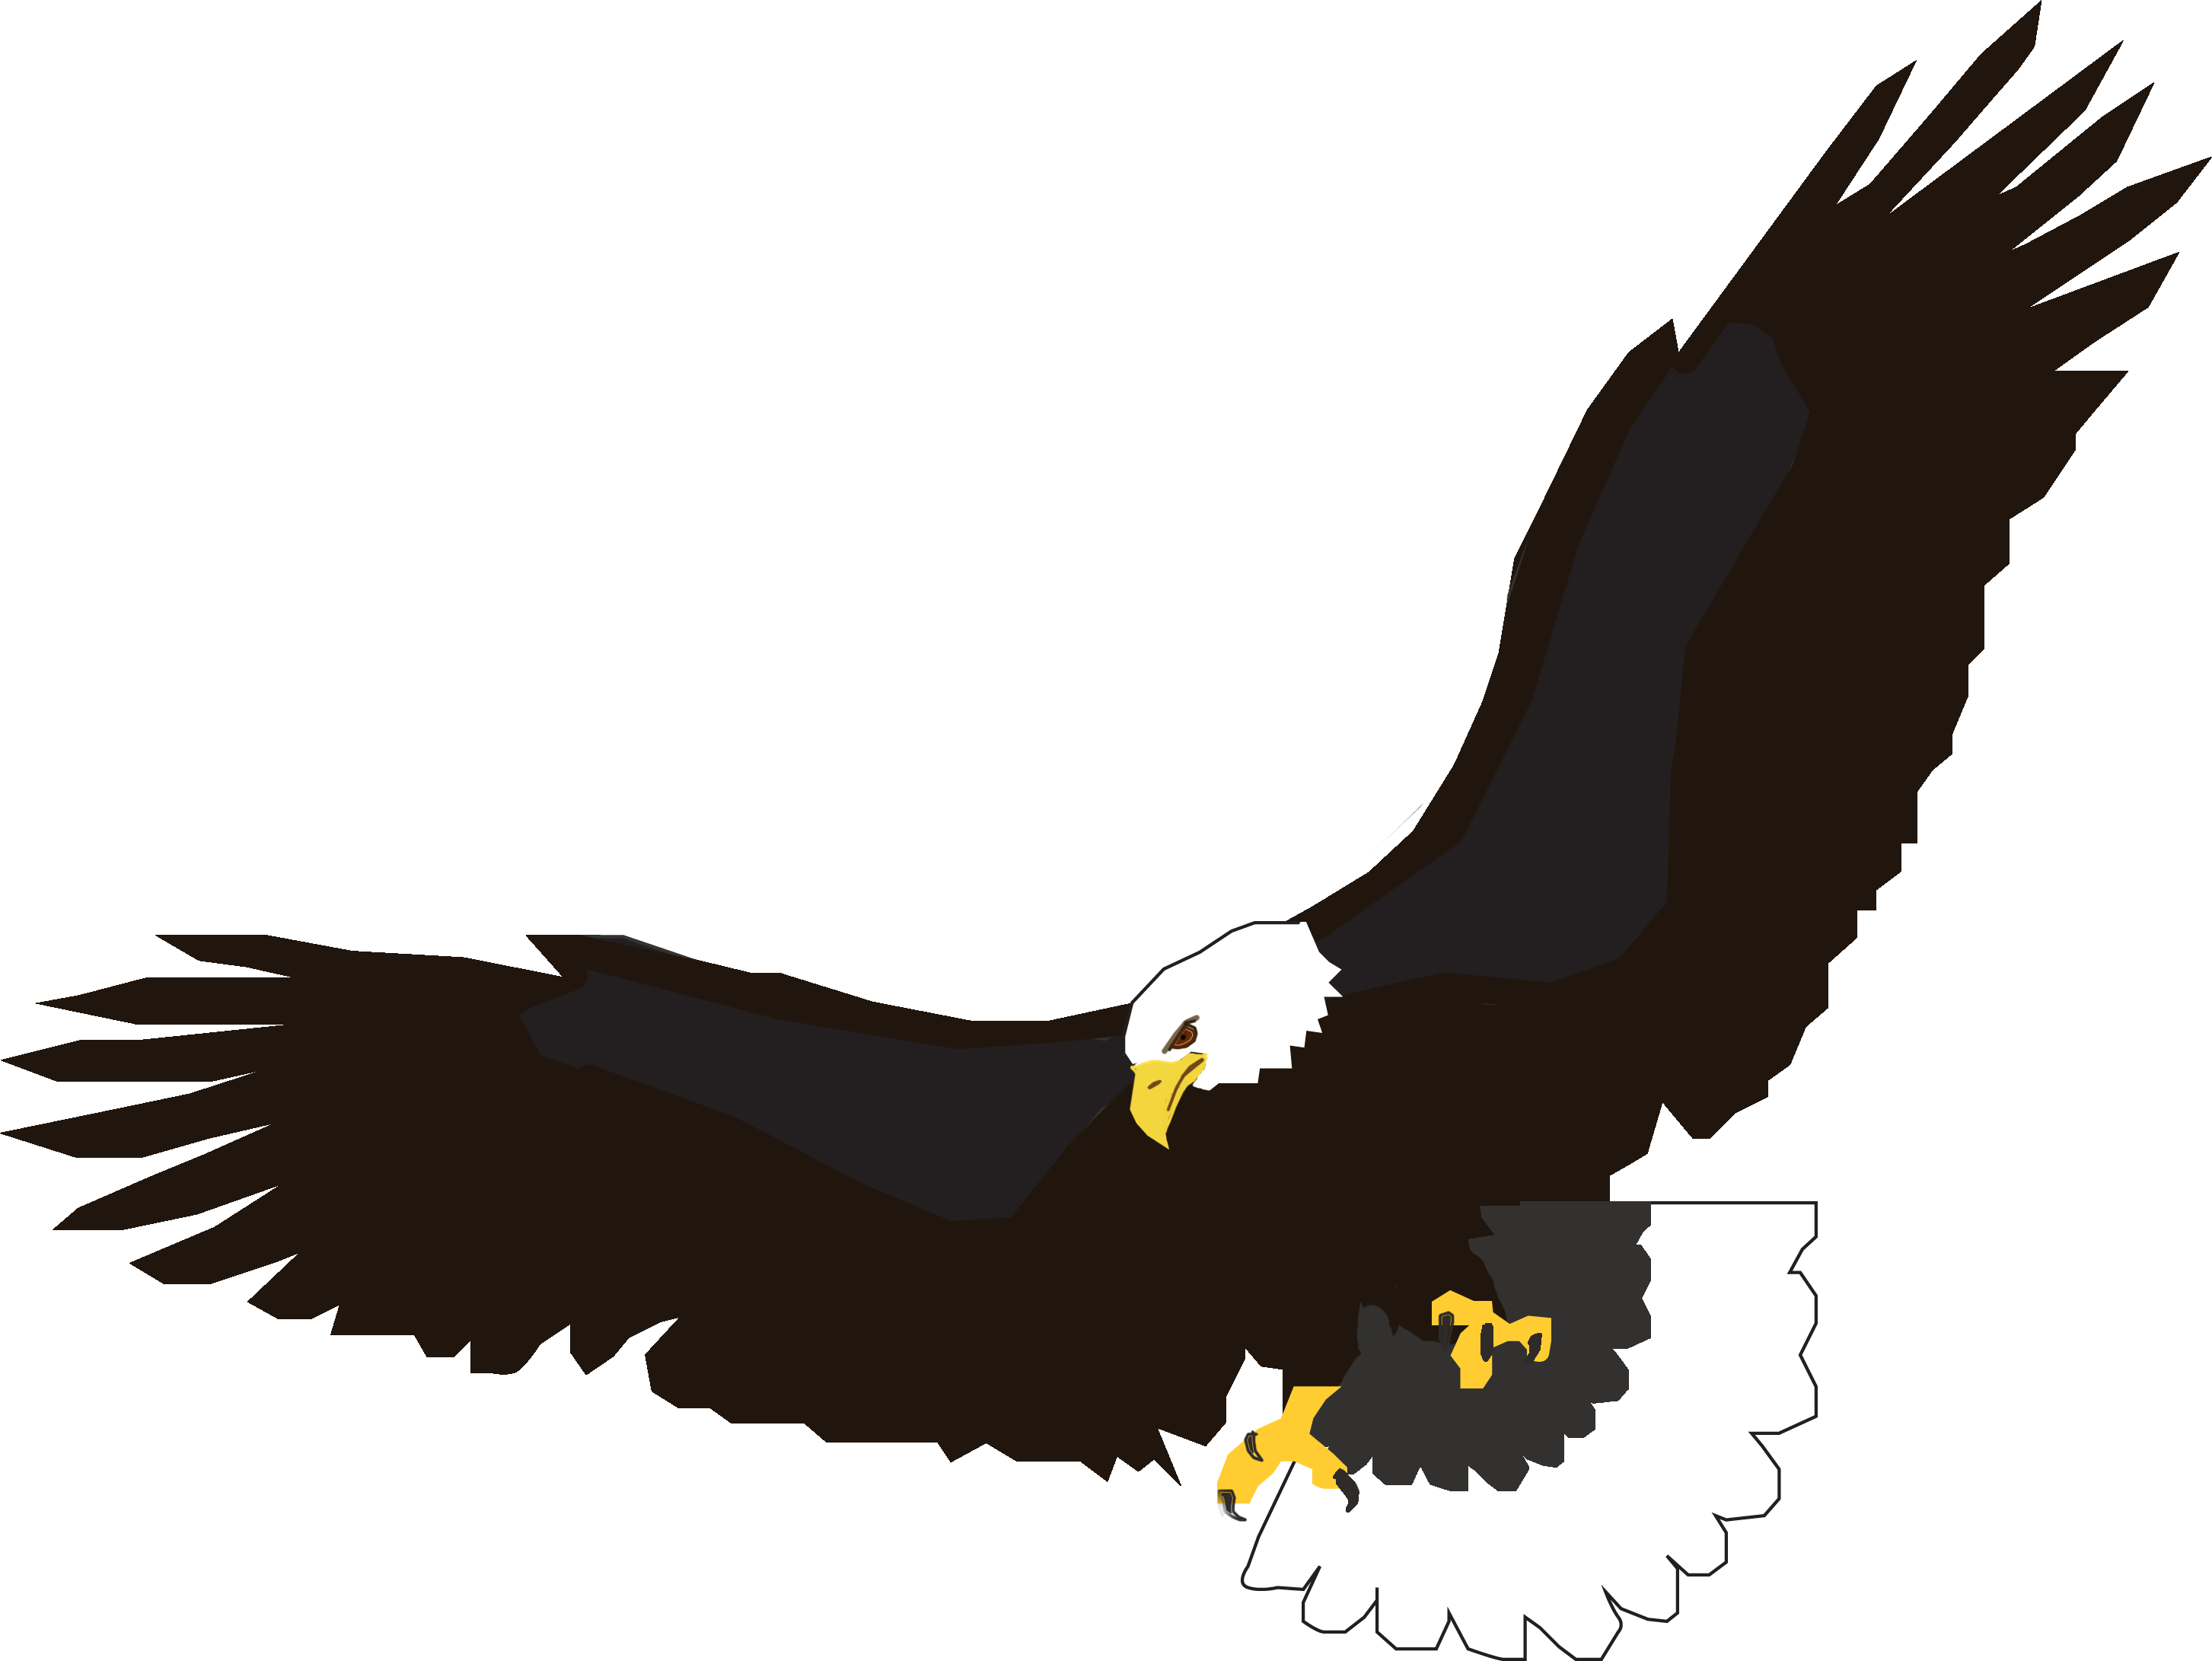 American clipart flying. Free eagle man cliparts